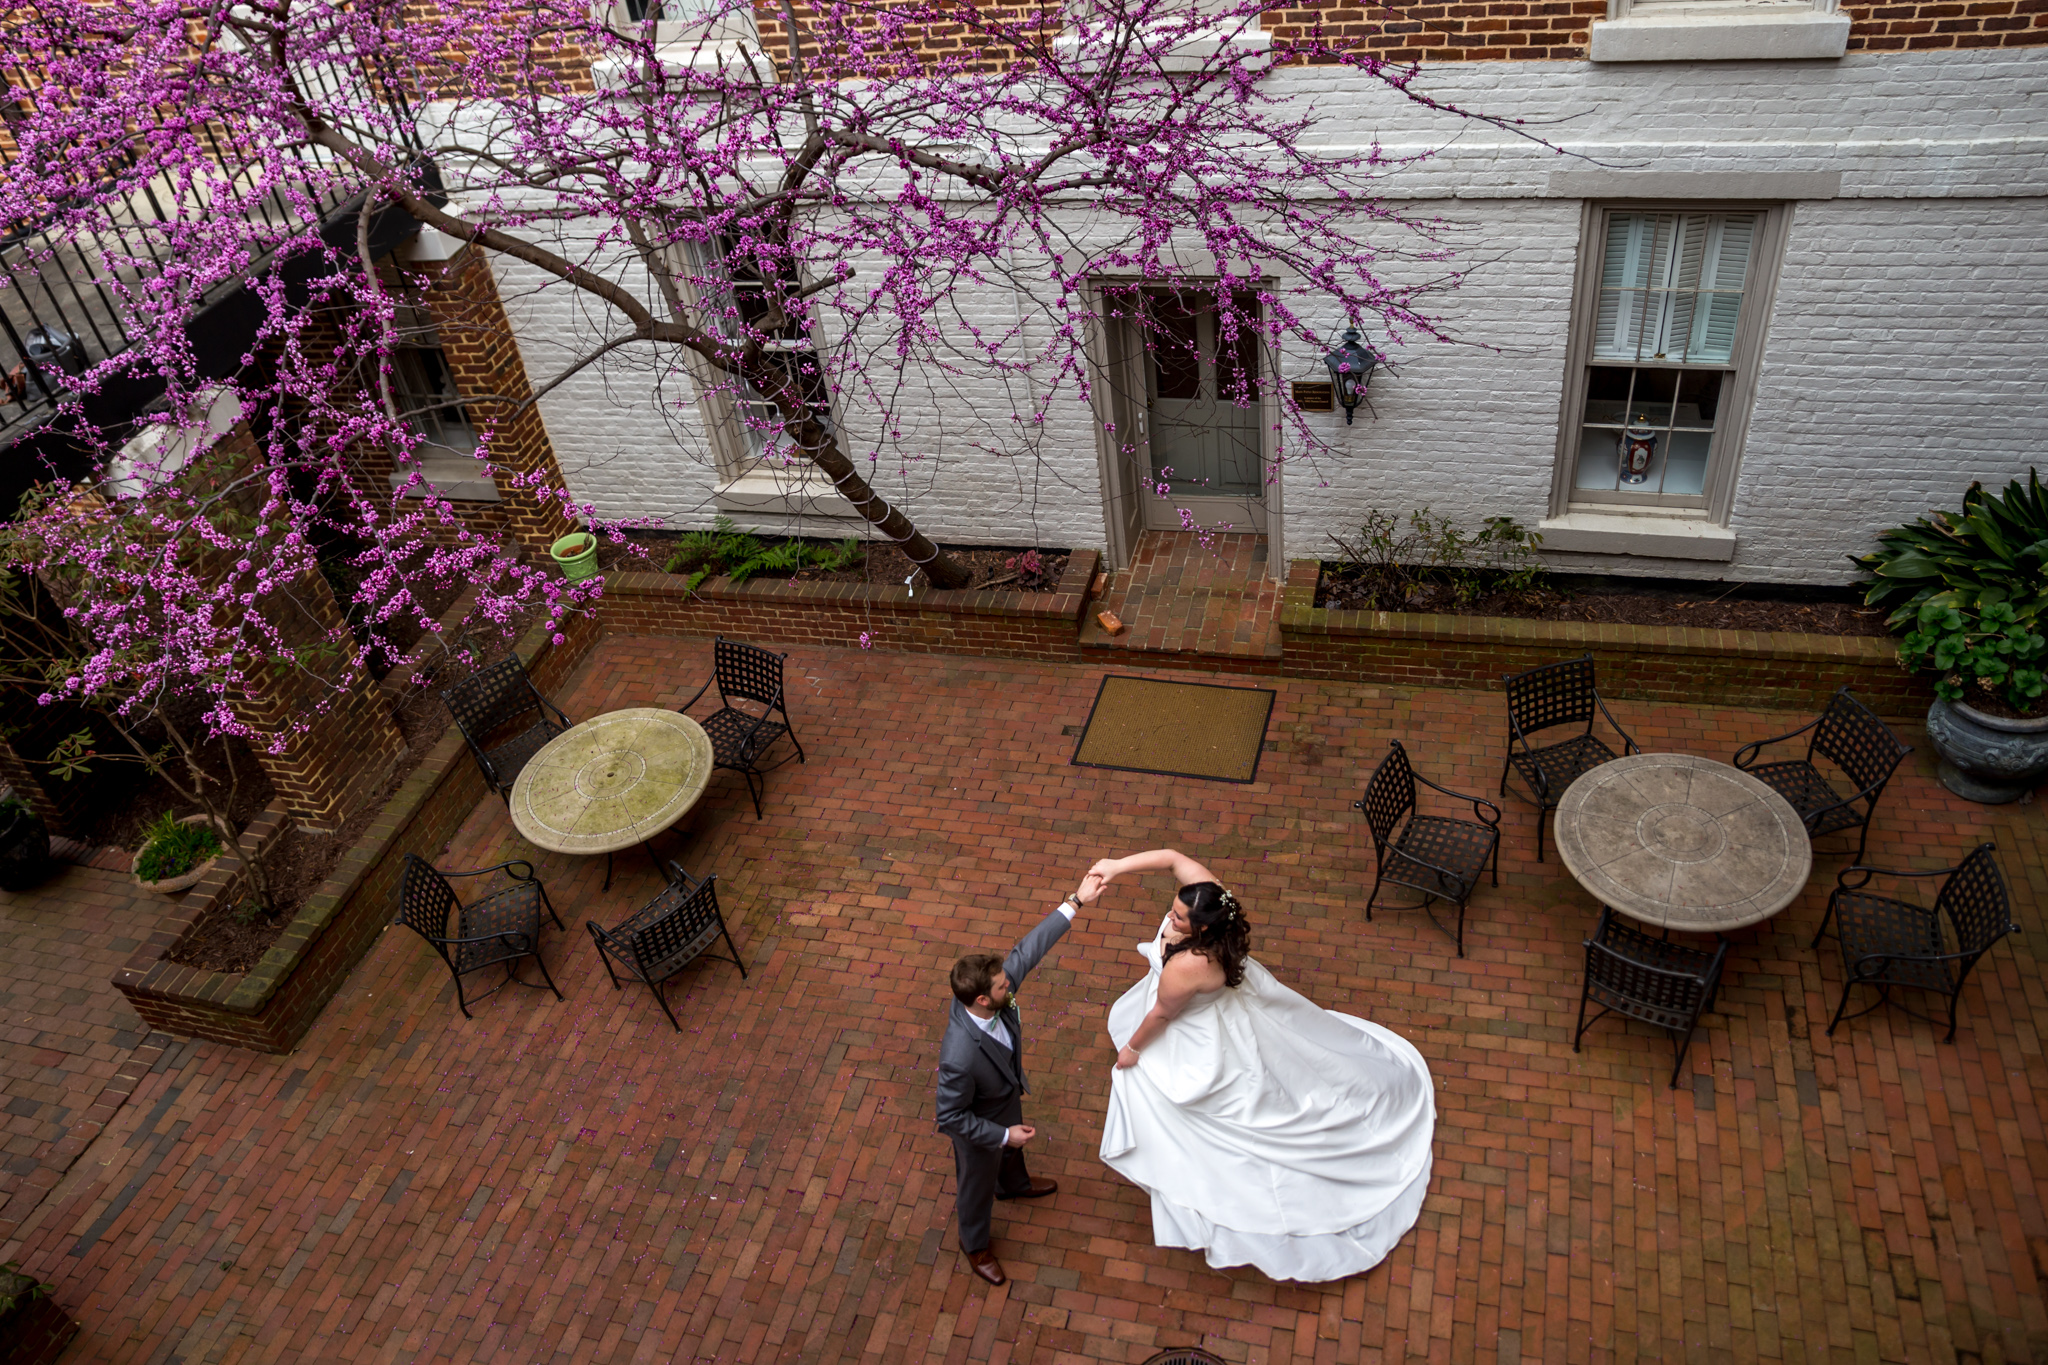 newlyweds - husband spinning his bride in a brick courtyard © MKM Photography